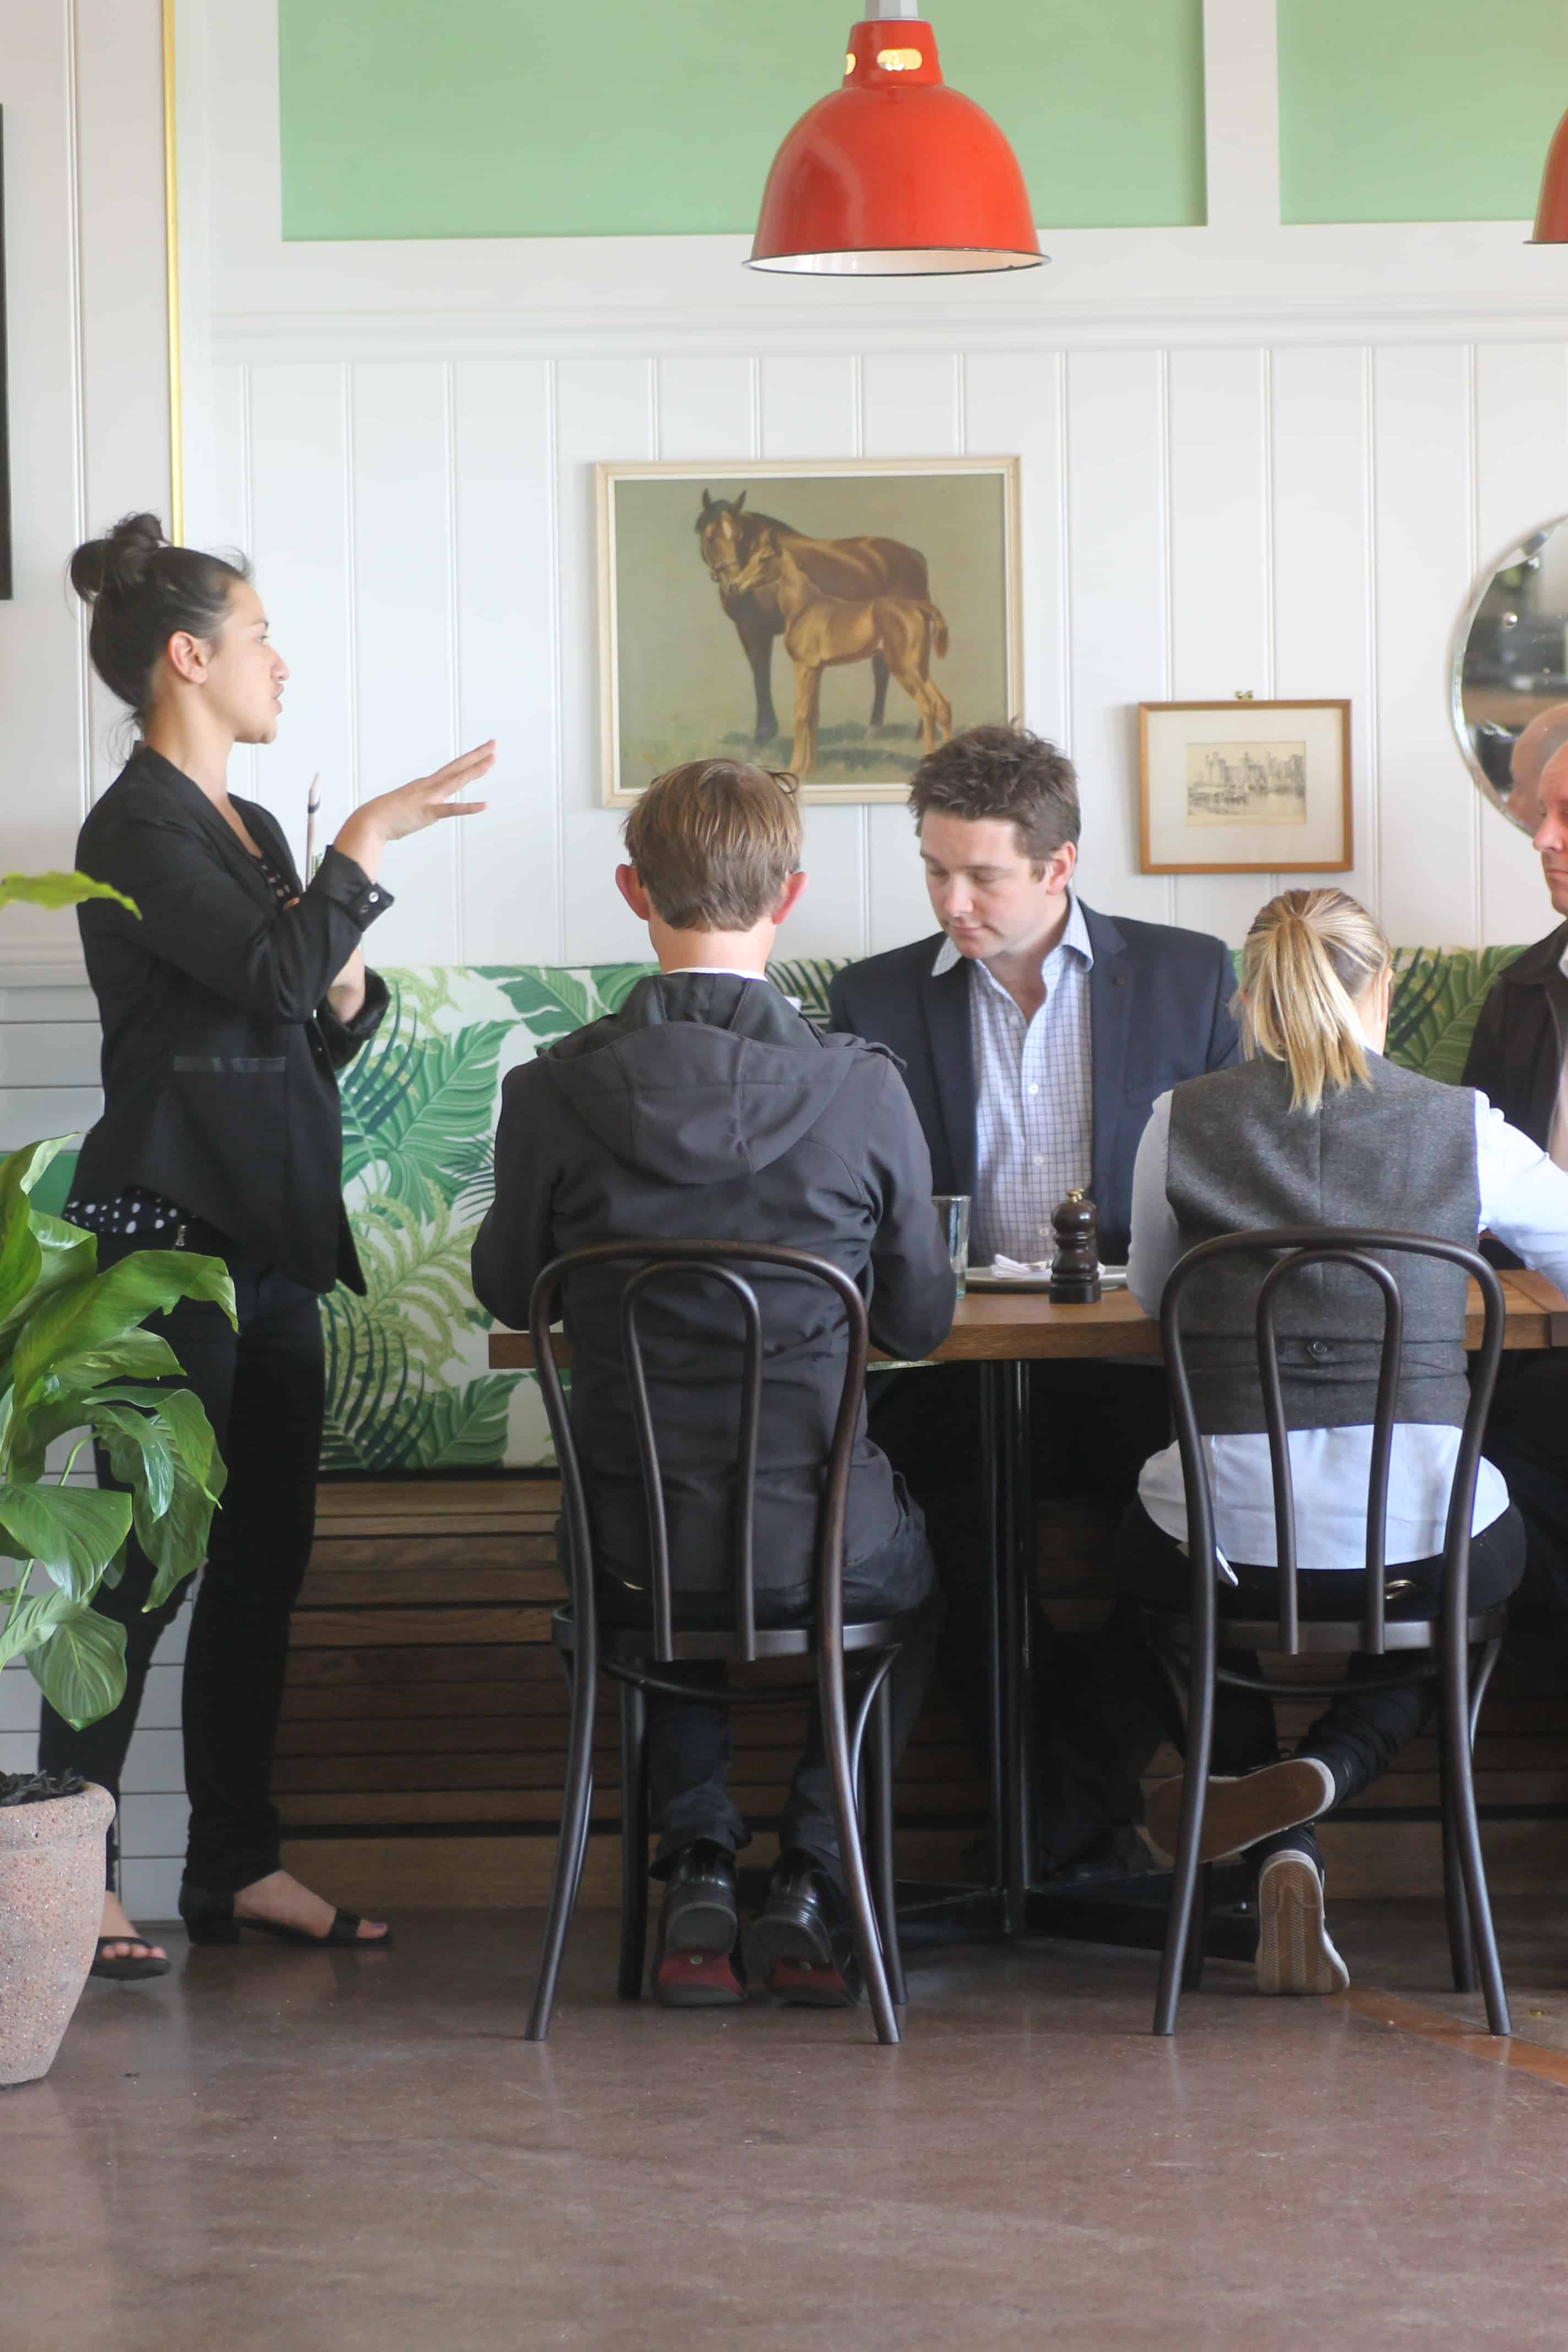 Culpepper restaurant in Auckland table and chair design with staff serving customers